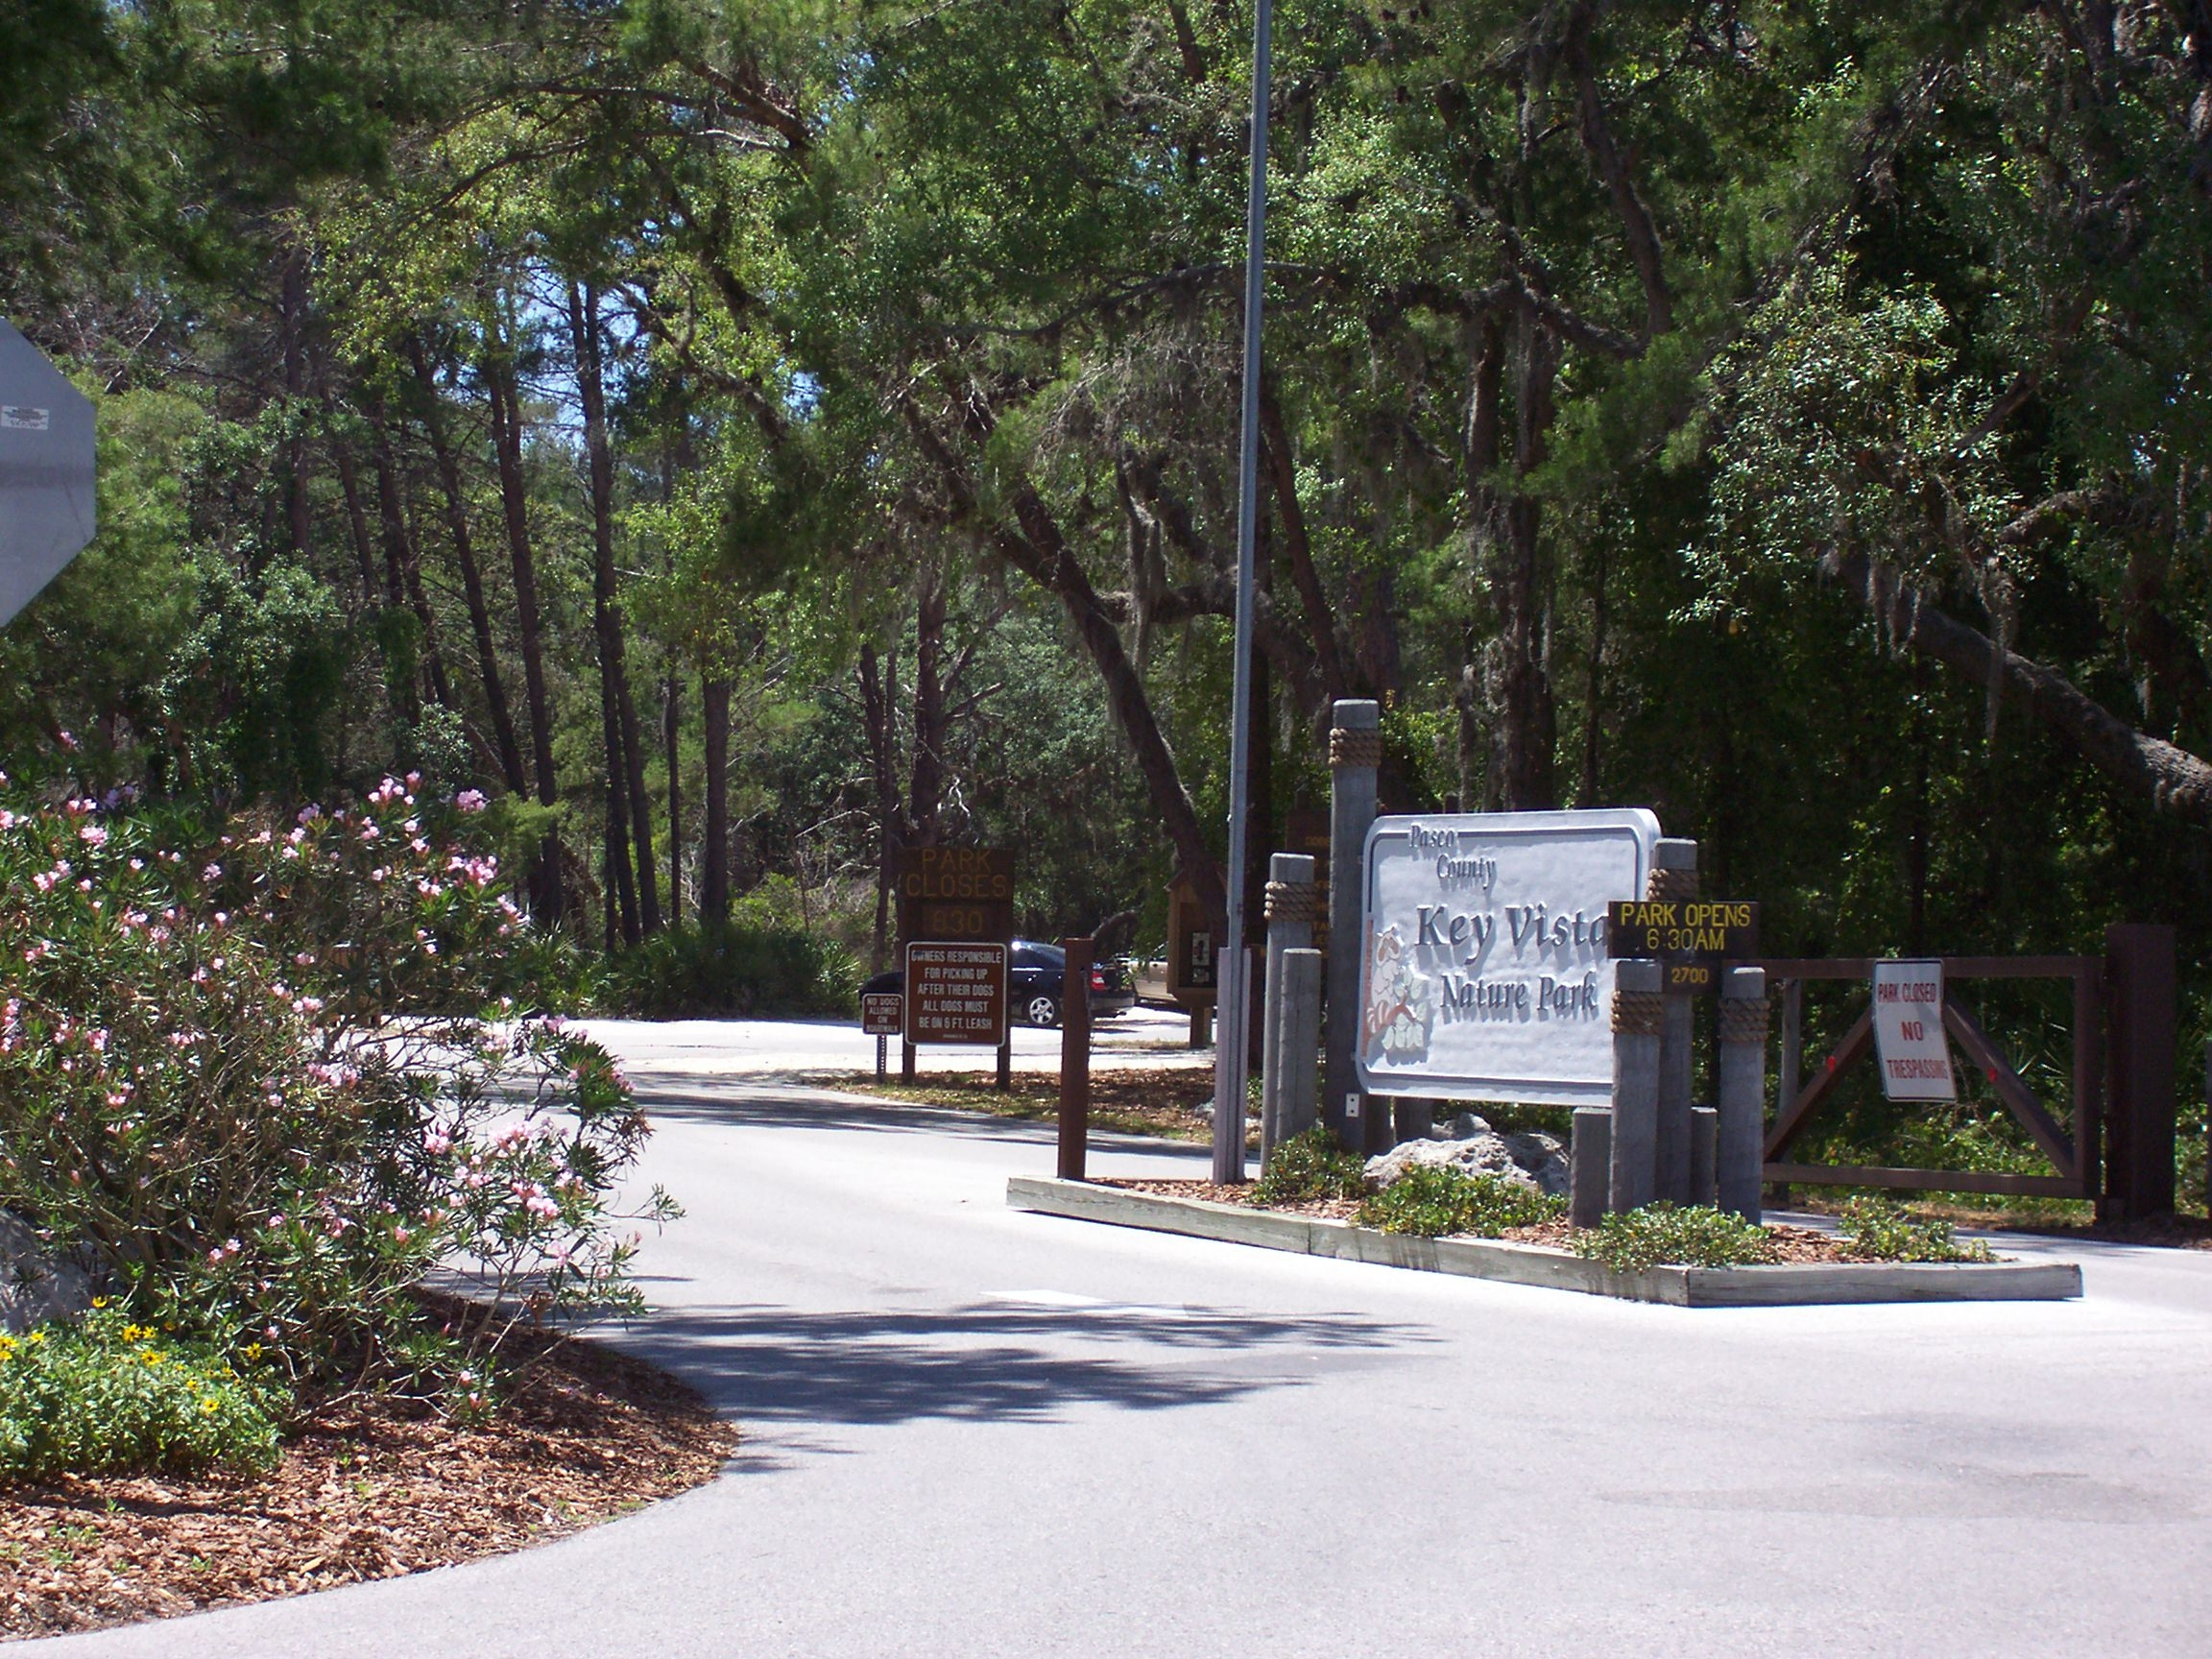 Key Vista Nature Park